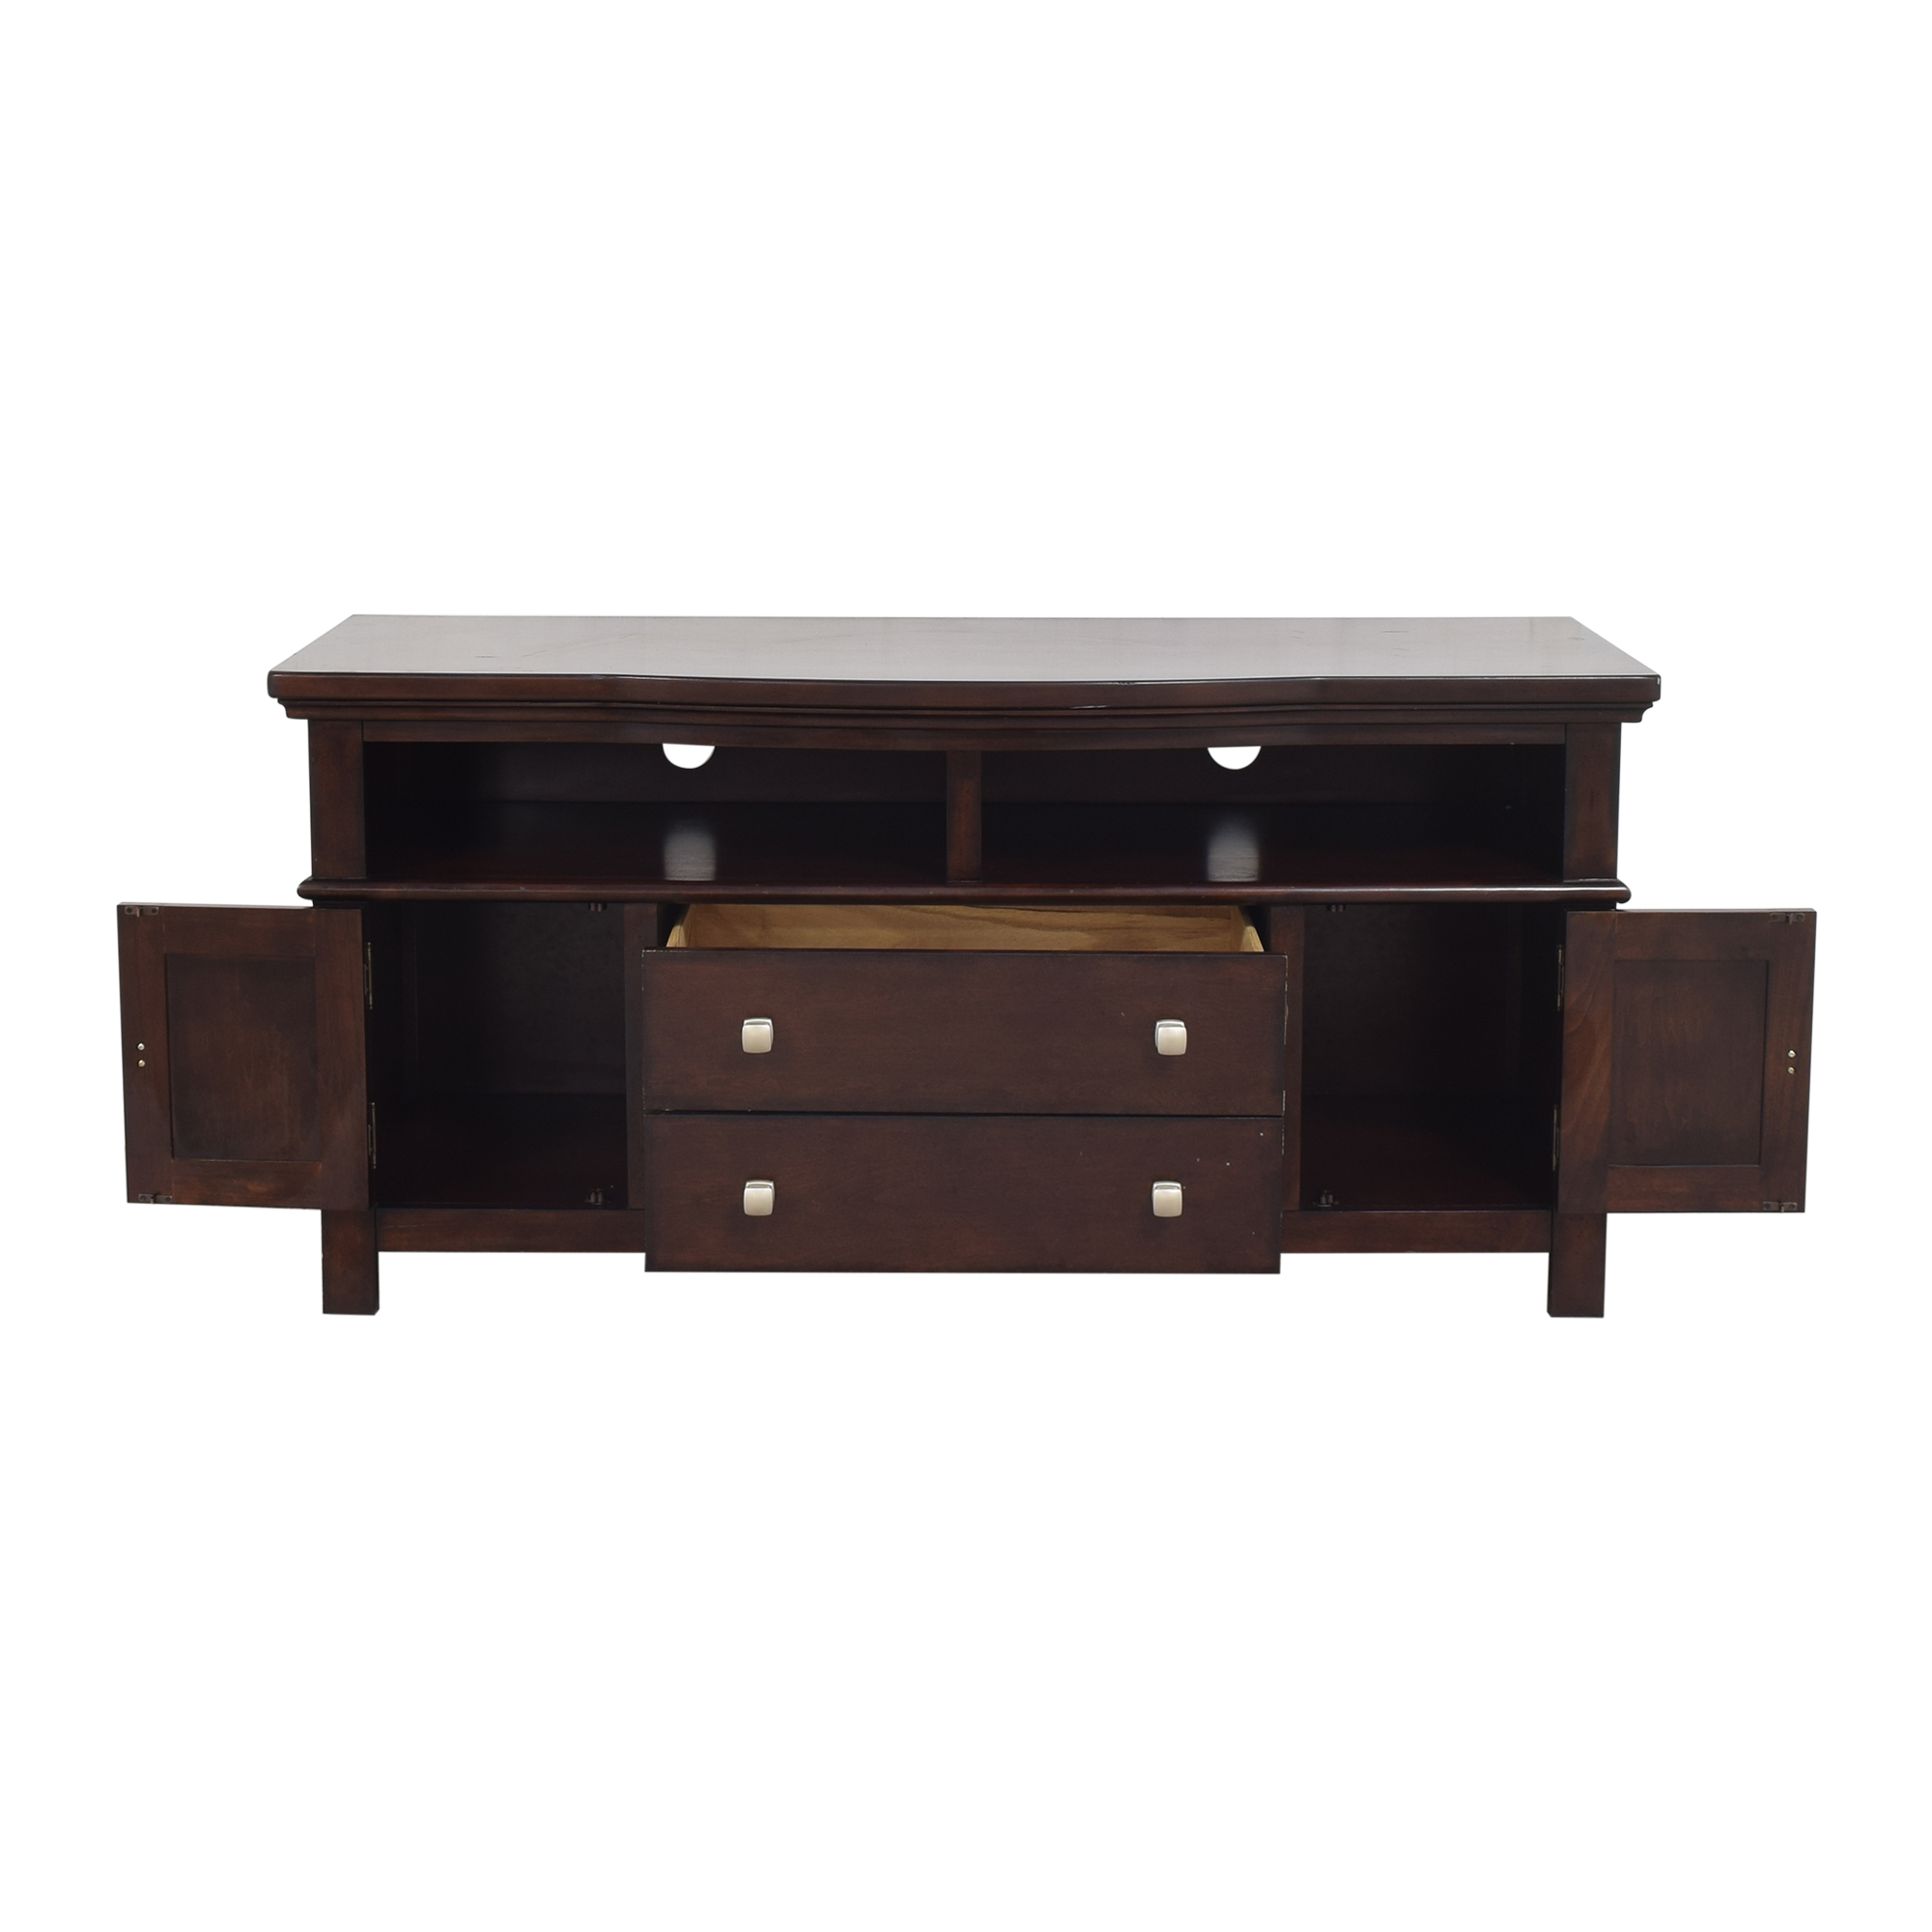 Media Console coupon